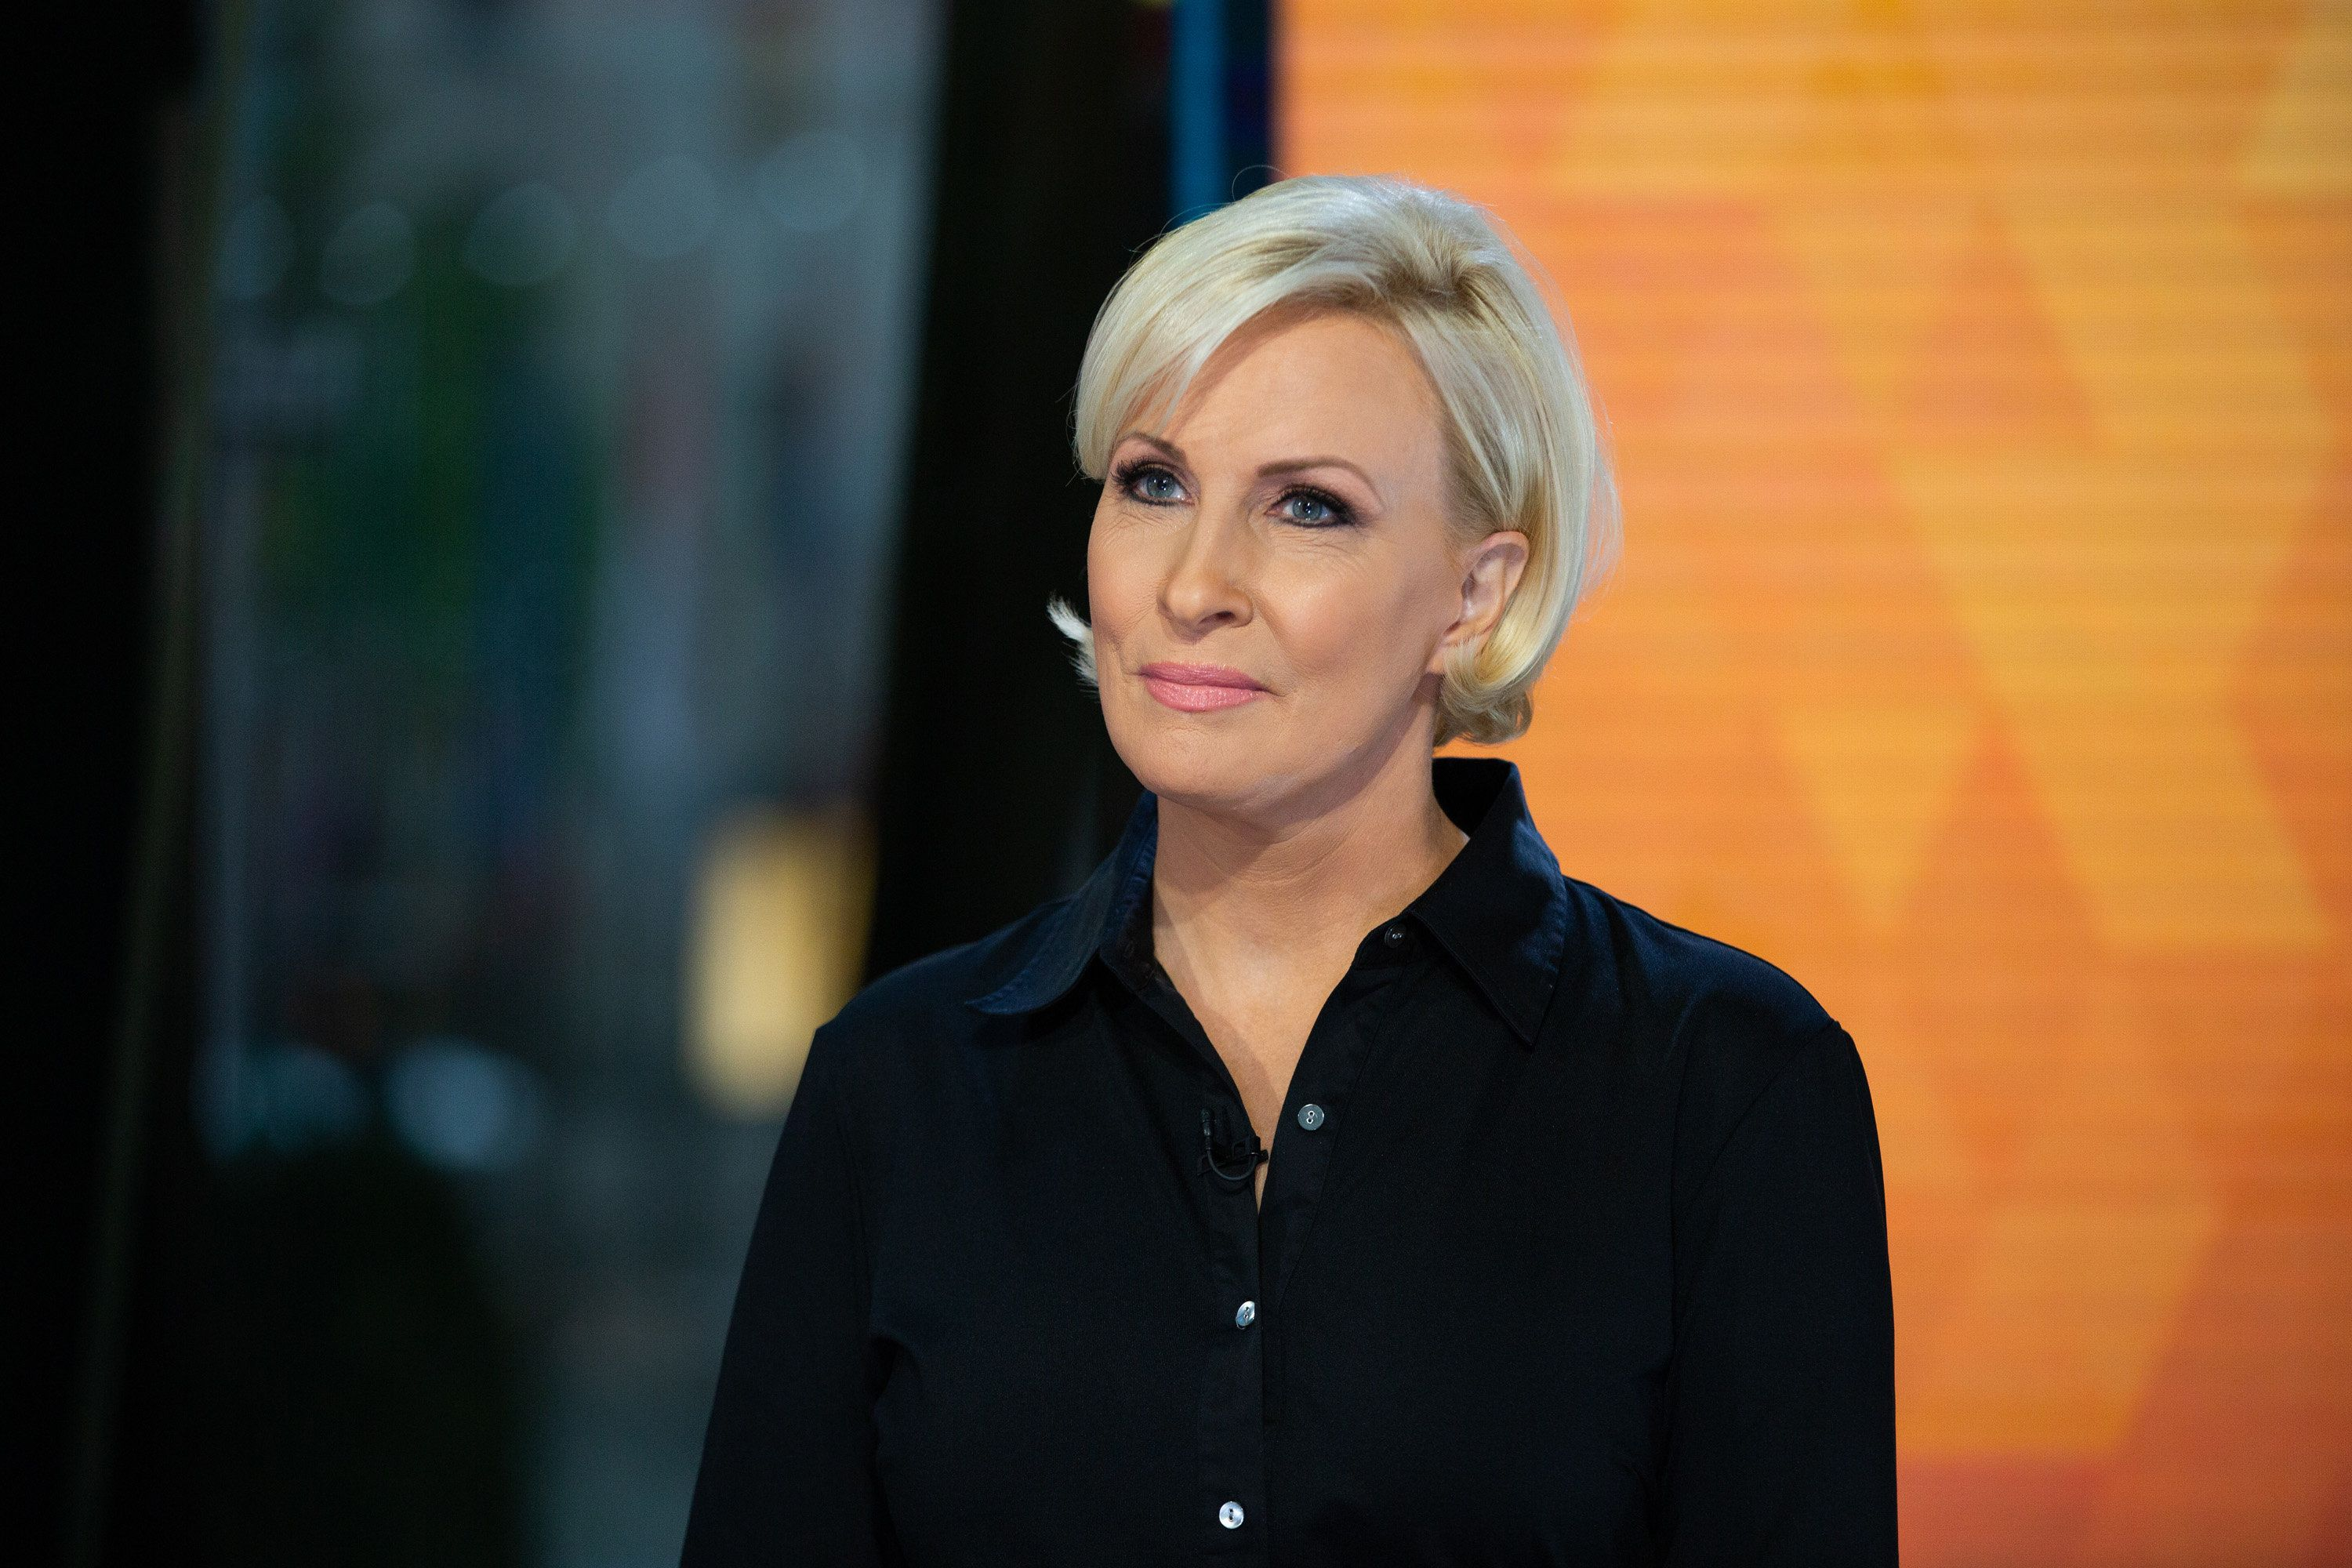 TODAY -- Pictured: Mika Brzezinski on Tuesday, September 25, 2018 -- (Photo by: Nathan Congleton/NBC/NBCU Photo Bank via Getty Images)